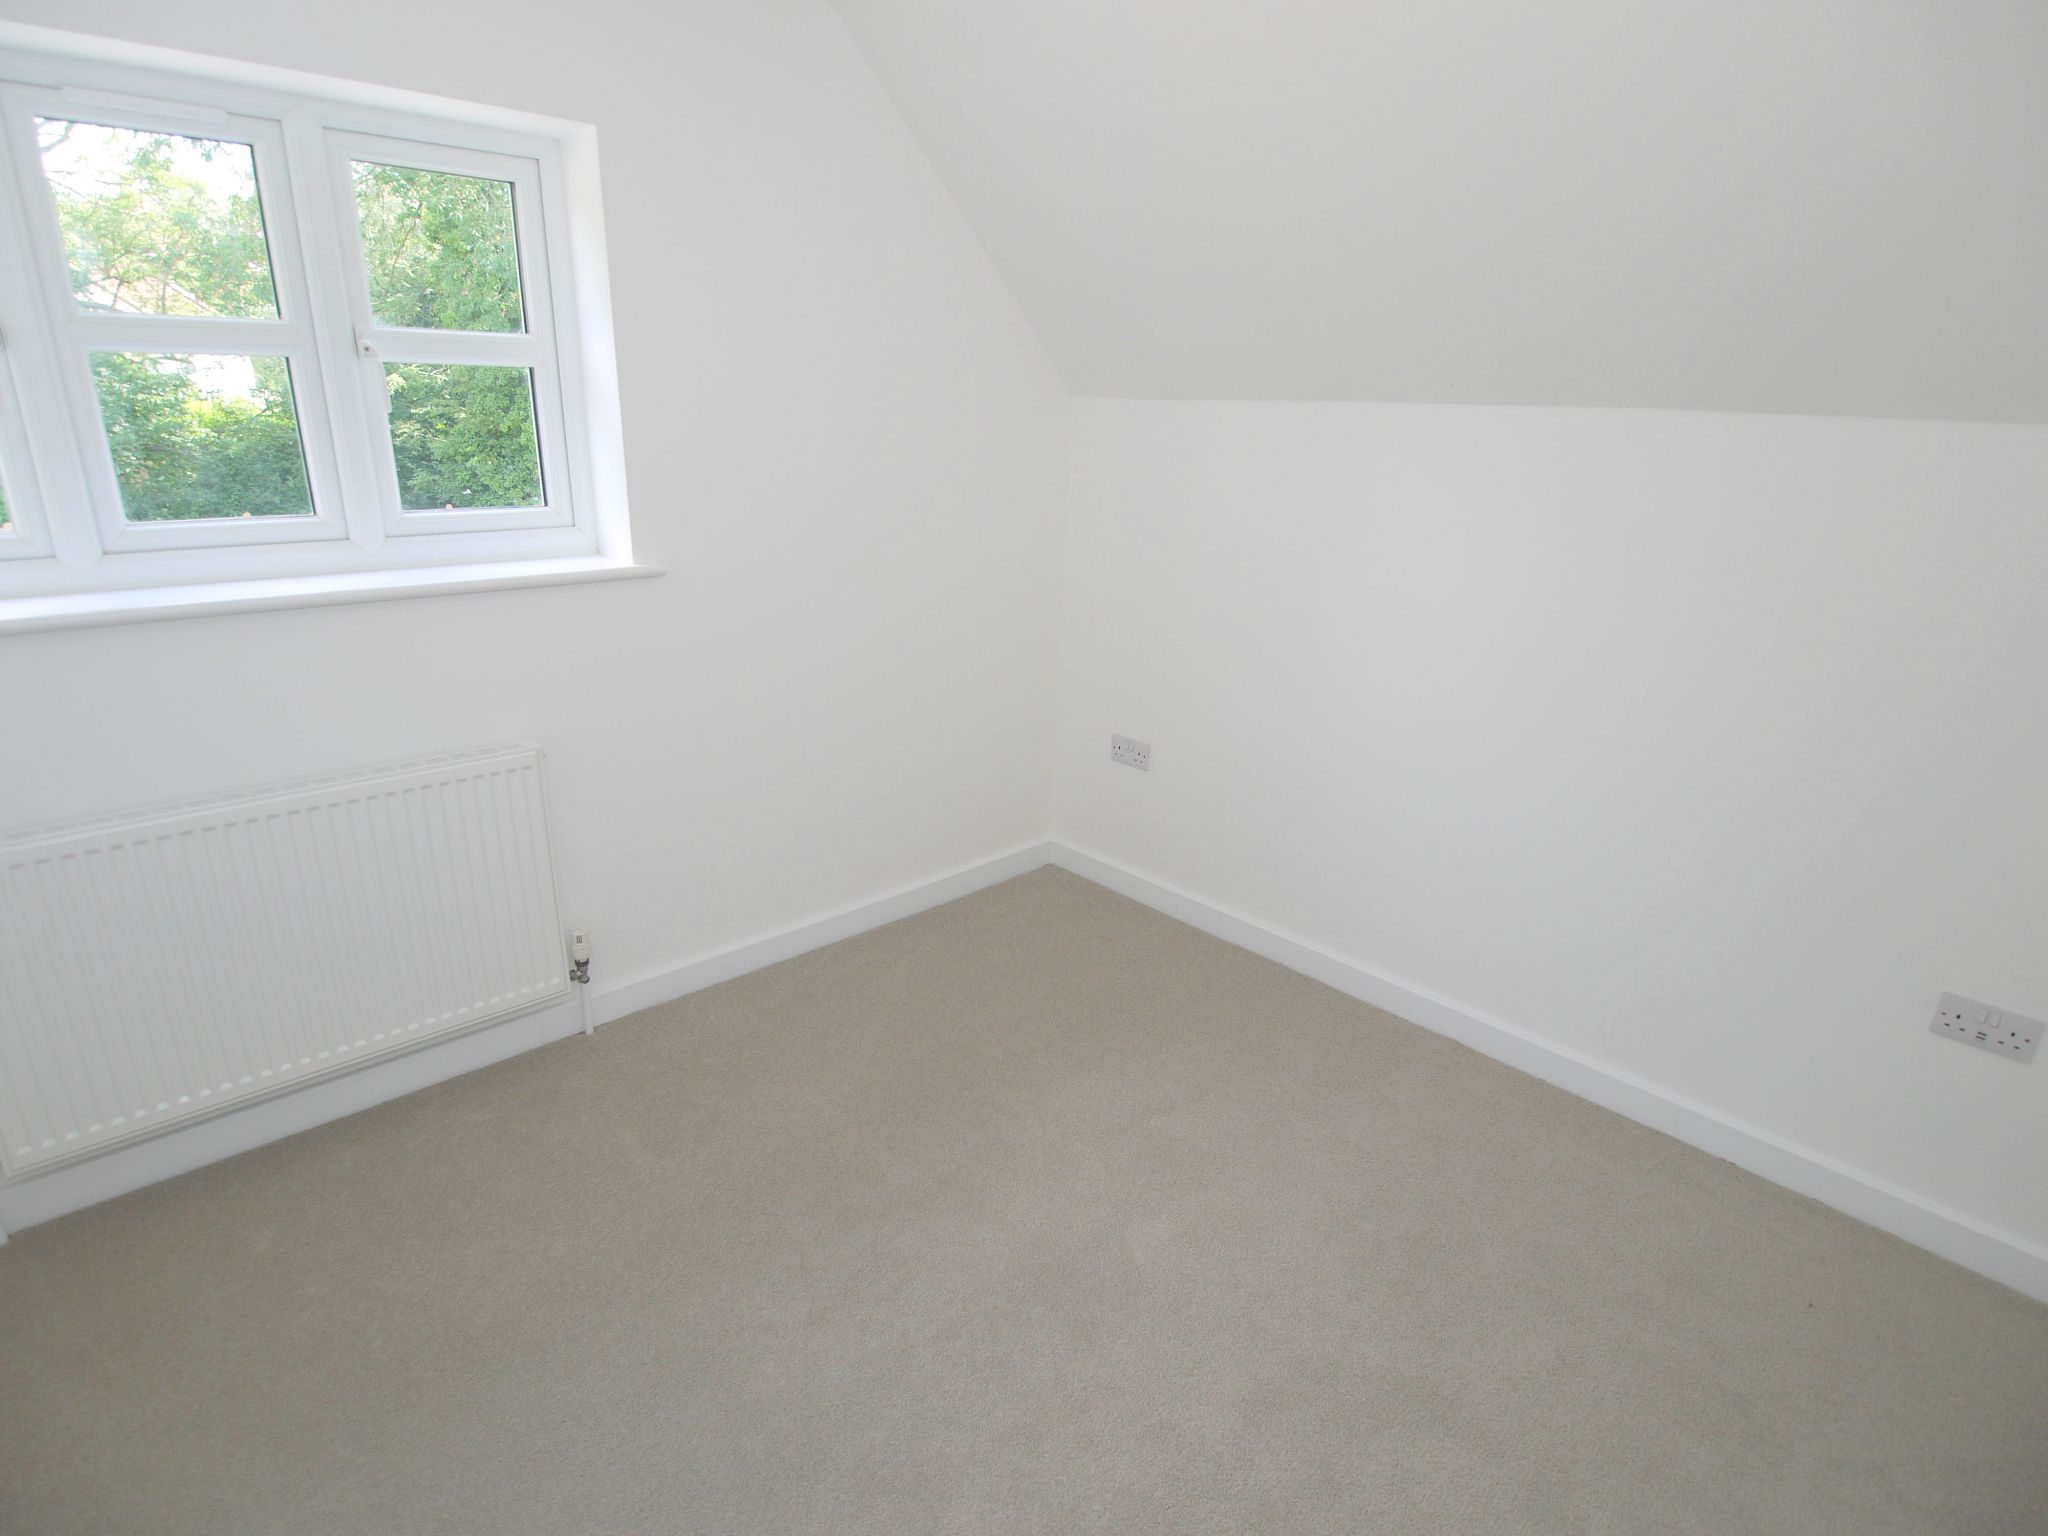 3 bedroom end terraced house Sold in Tonbridge - Photograph 6